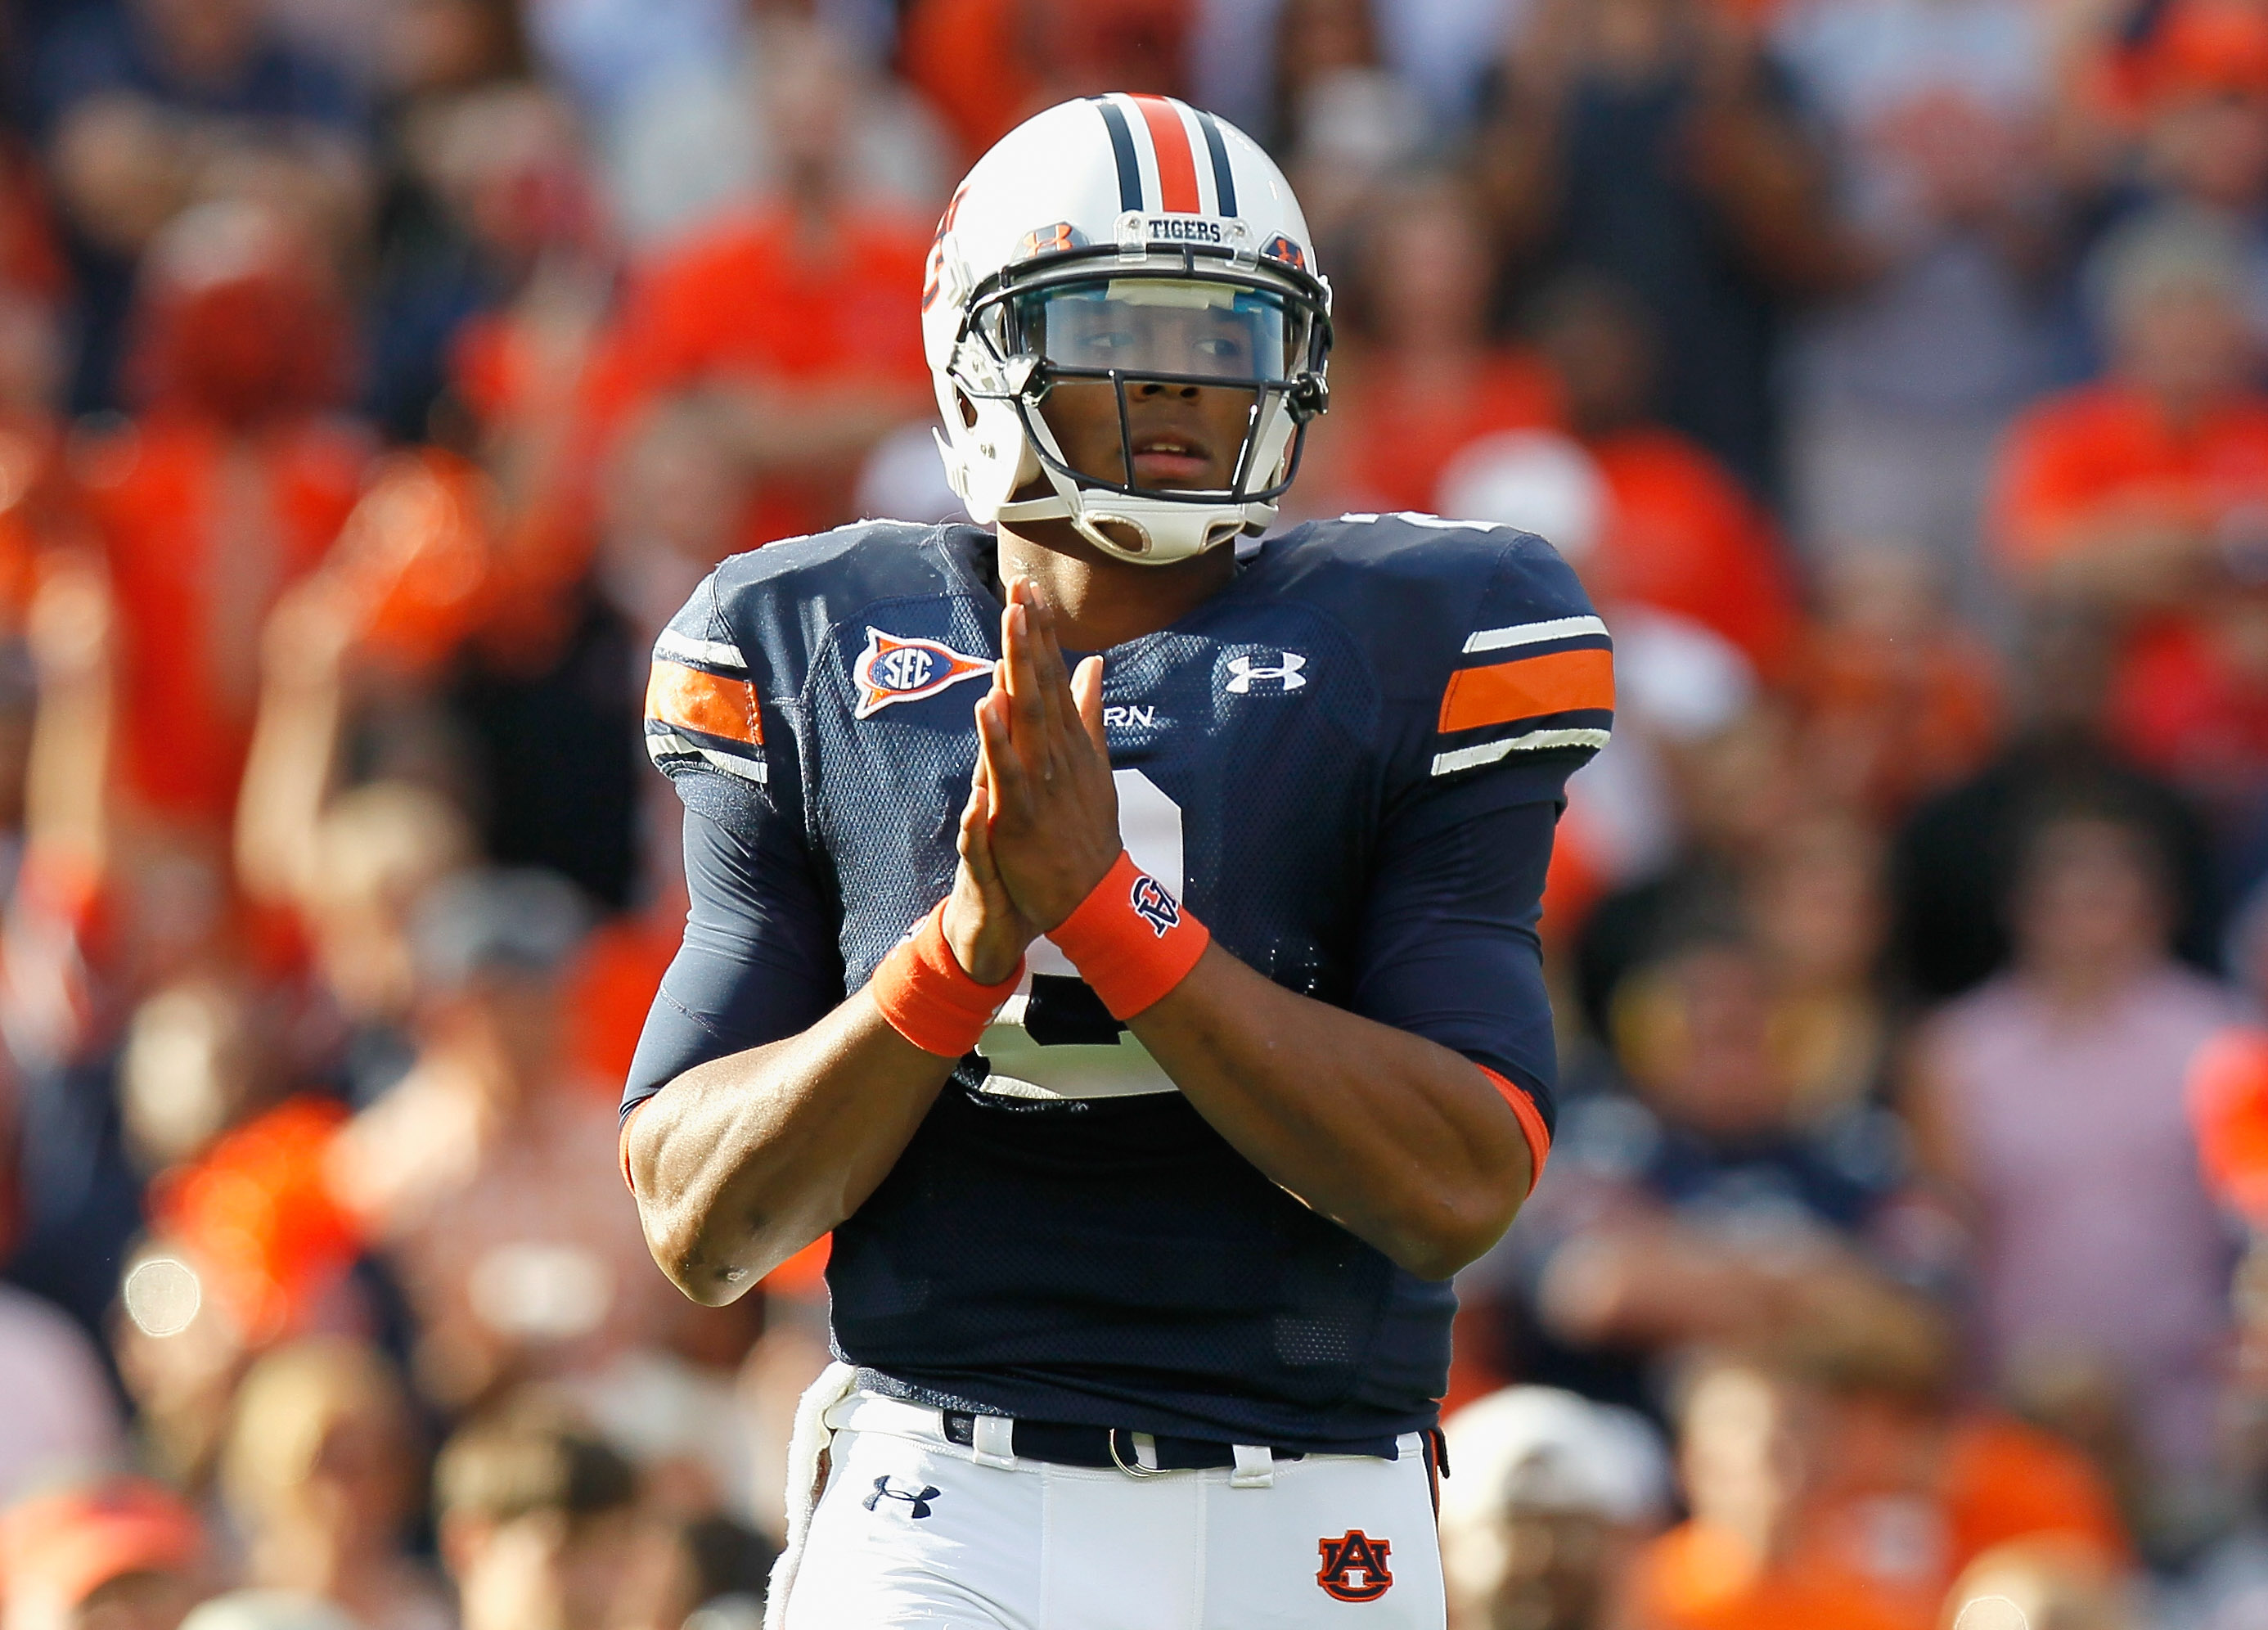 AUBURN, AL - NOVEMBER 13:  Quarterback Cameron Newton #2 of the Auburn Tigers walks onto the field for the first offensive series against the Georgia Bulldogs at Jordan-Hare Stadium on November 13, 2010 in Auburn, Alabama.  (Photo by Kevin C. Cox/Getty Im